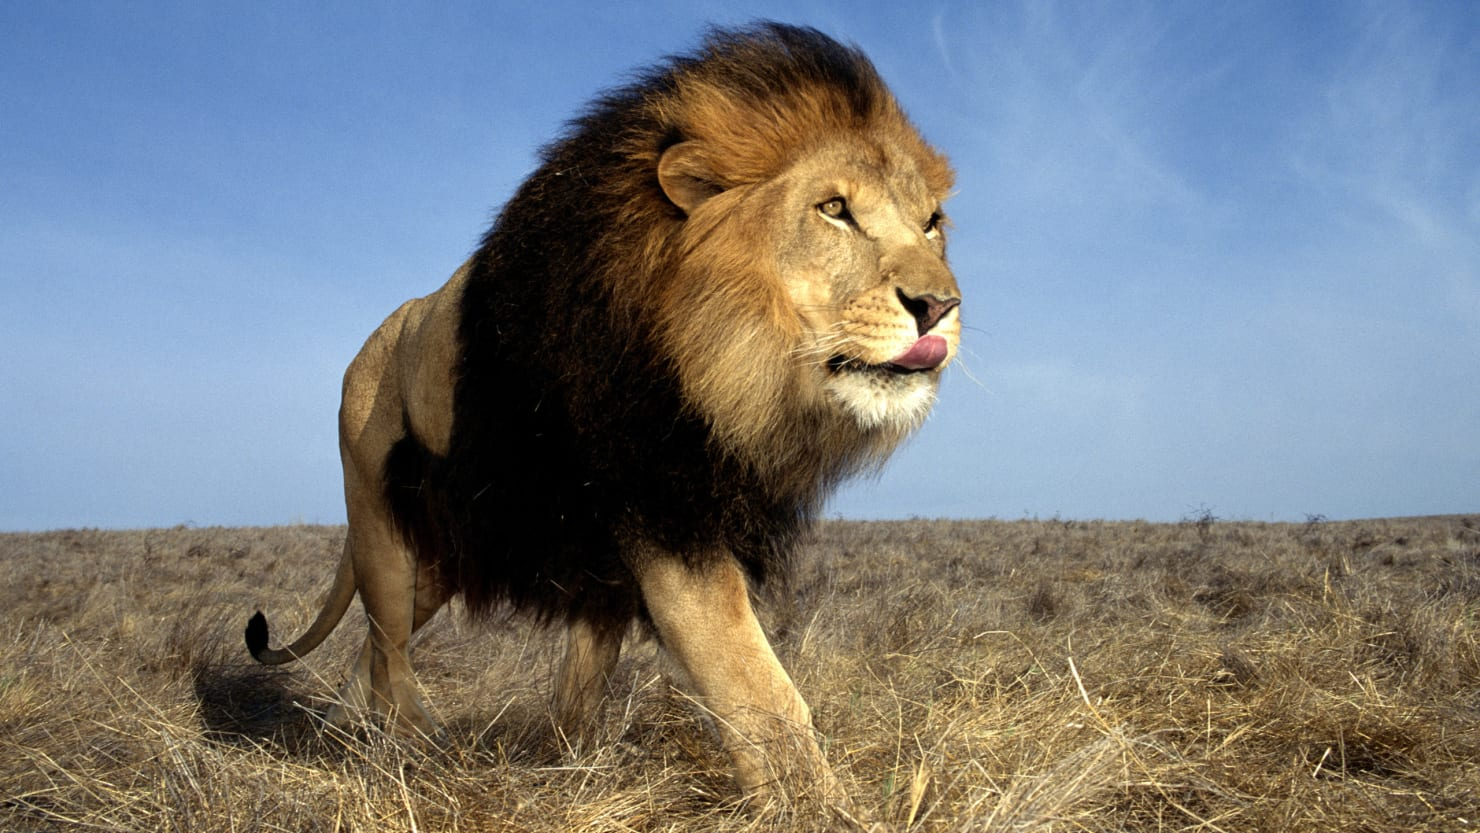 african lions born free no born captive to be killed